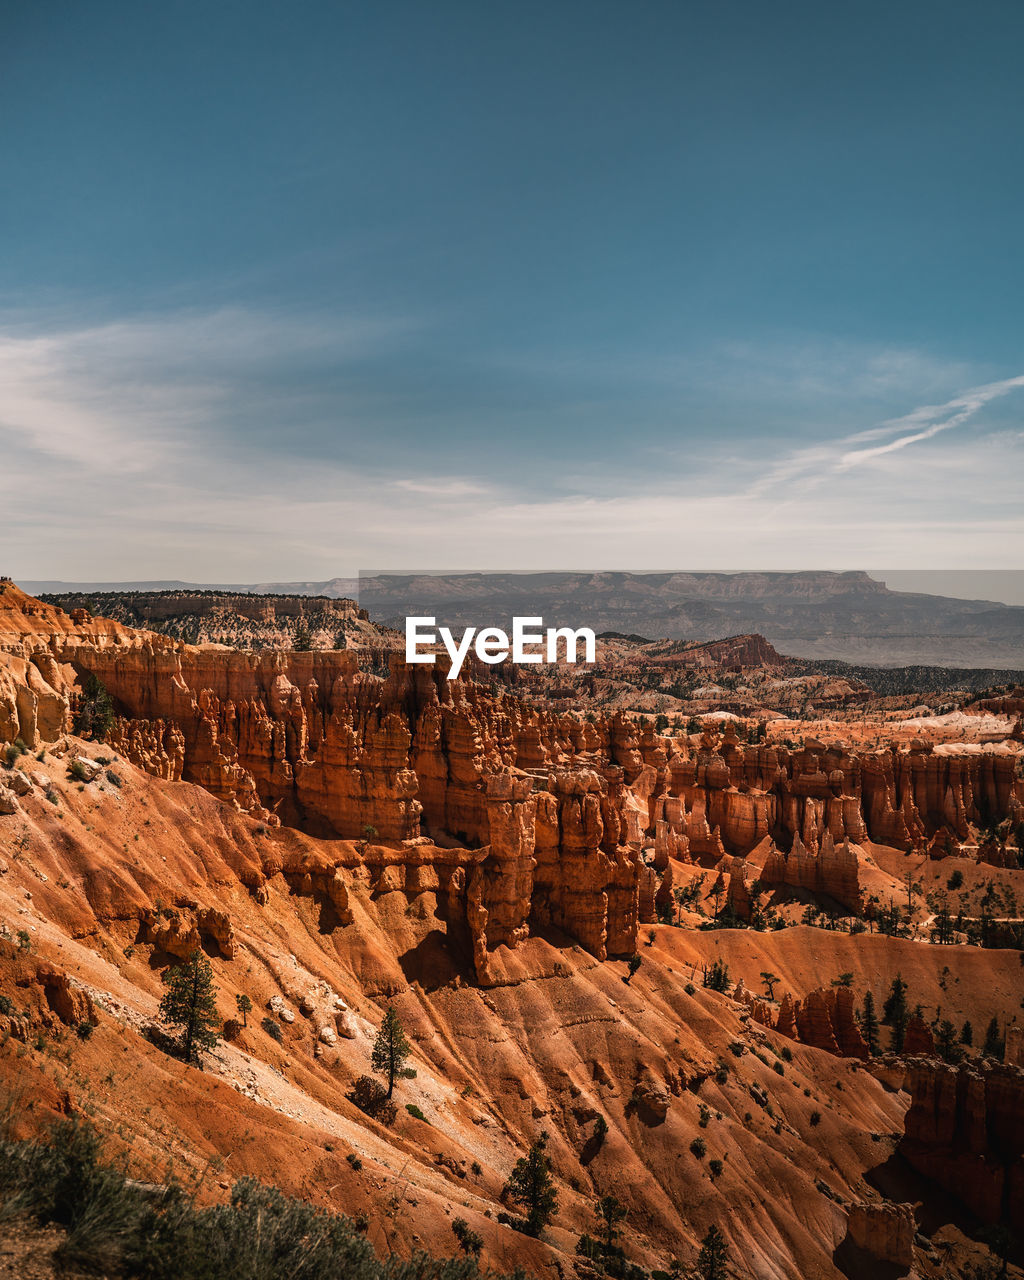 AERIAL VIEW OF ROCK FORMATION AGAINST SKY